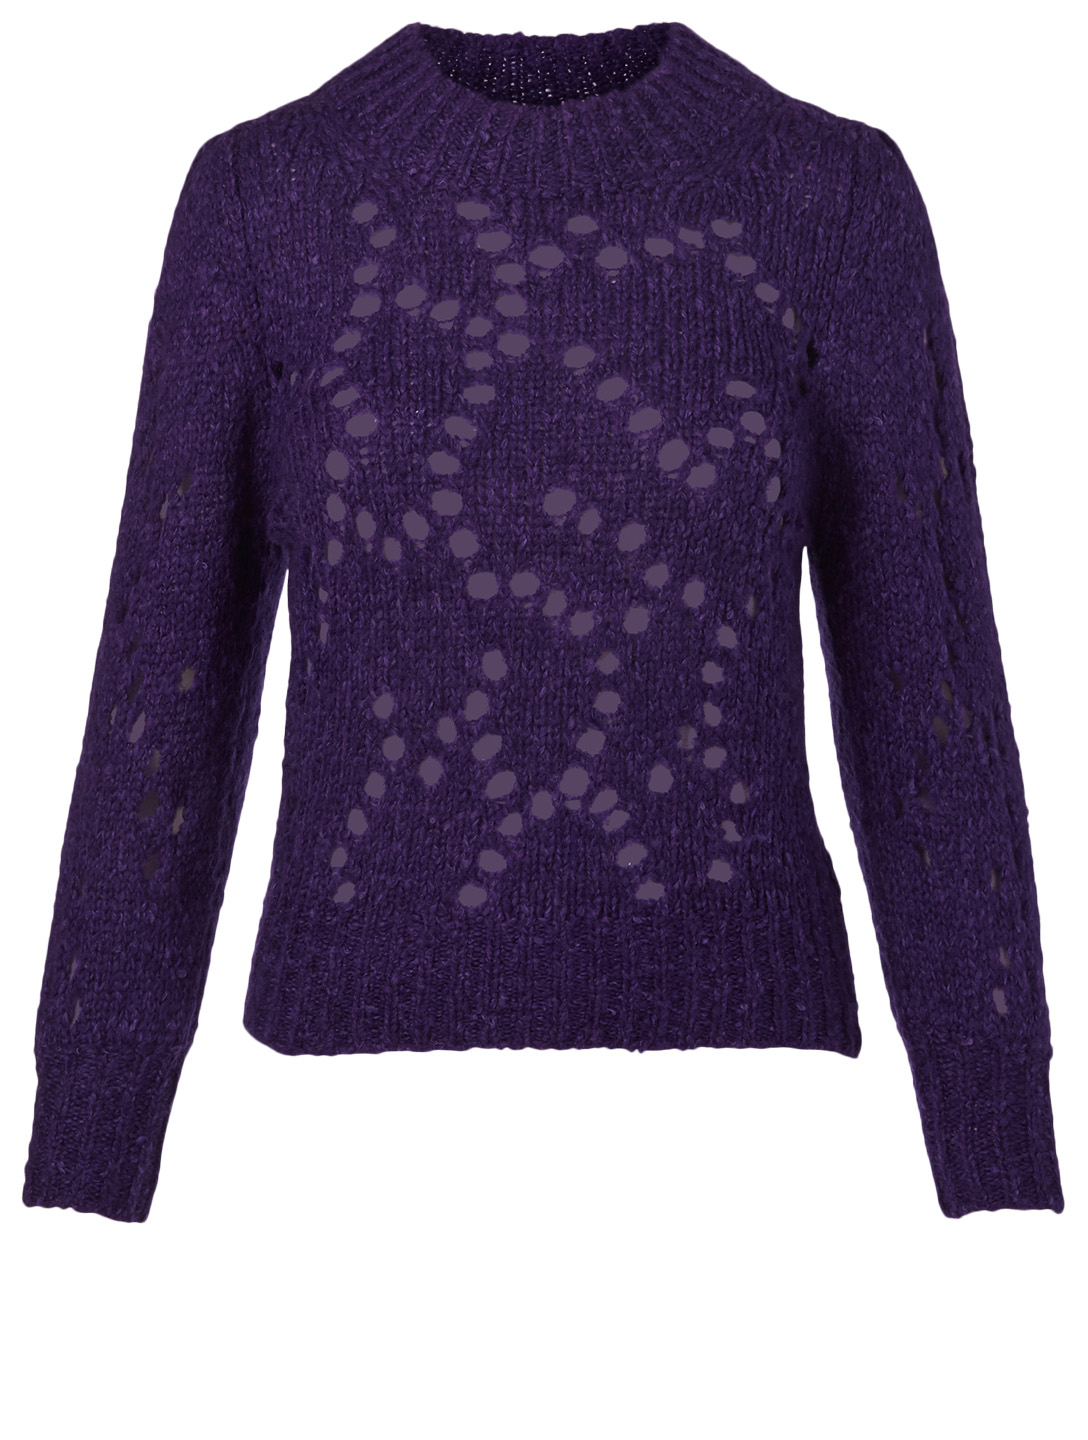 ISABEL MARANT ÉTOILE Sineady Wool-Blend Sweater Women's Purple